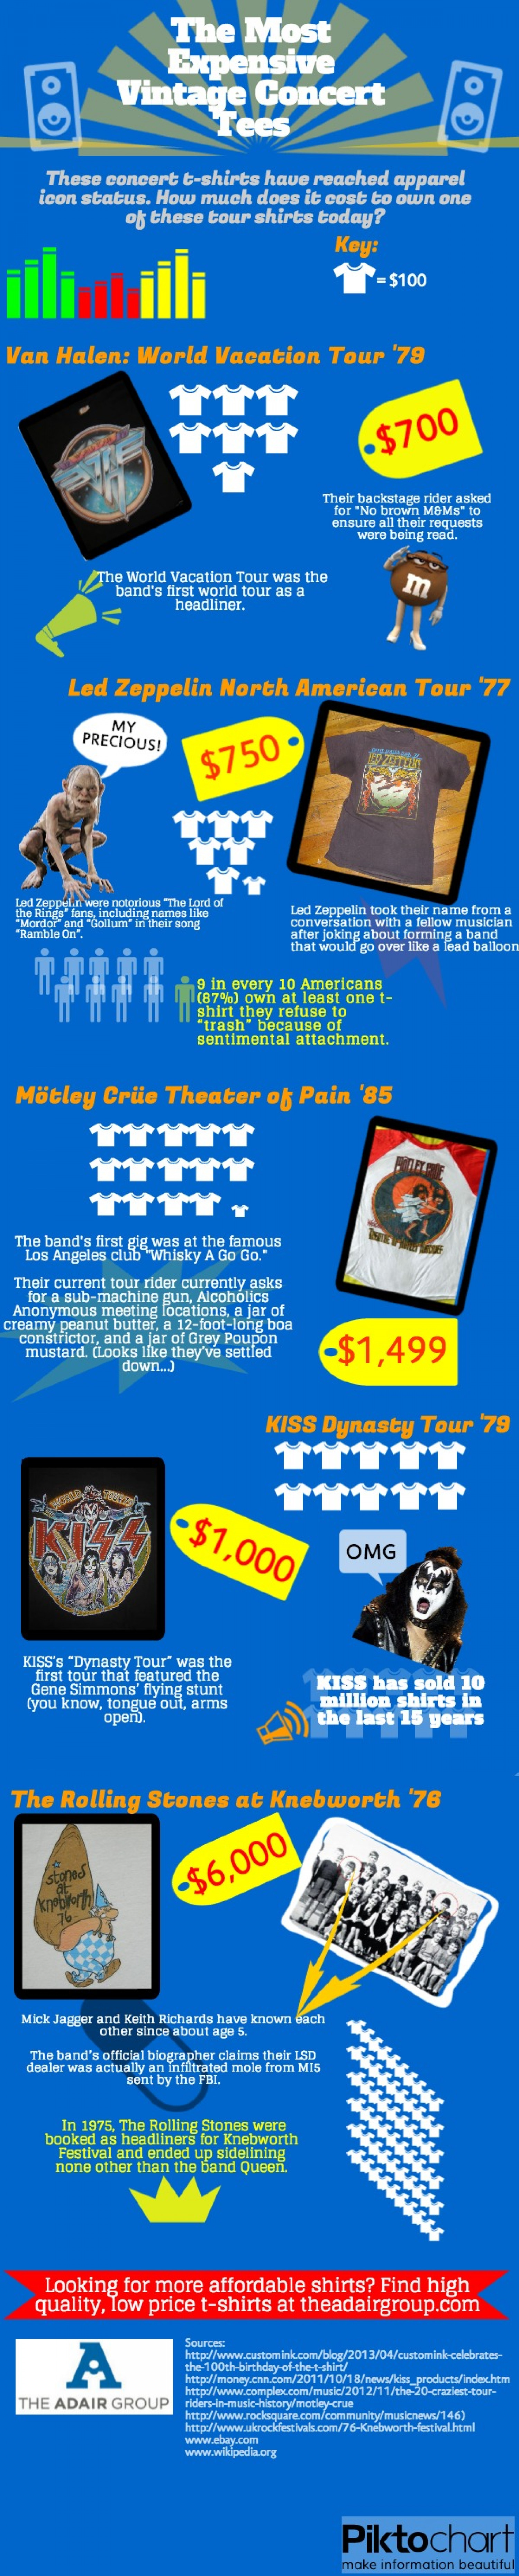 The Most Expensive Vintage Concert T Shirts Infographic